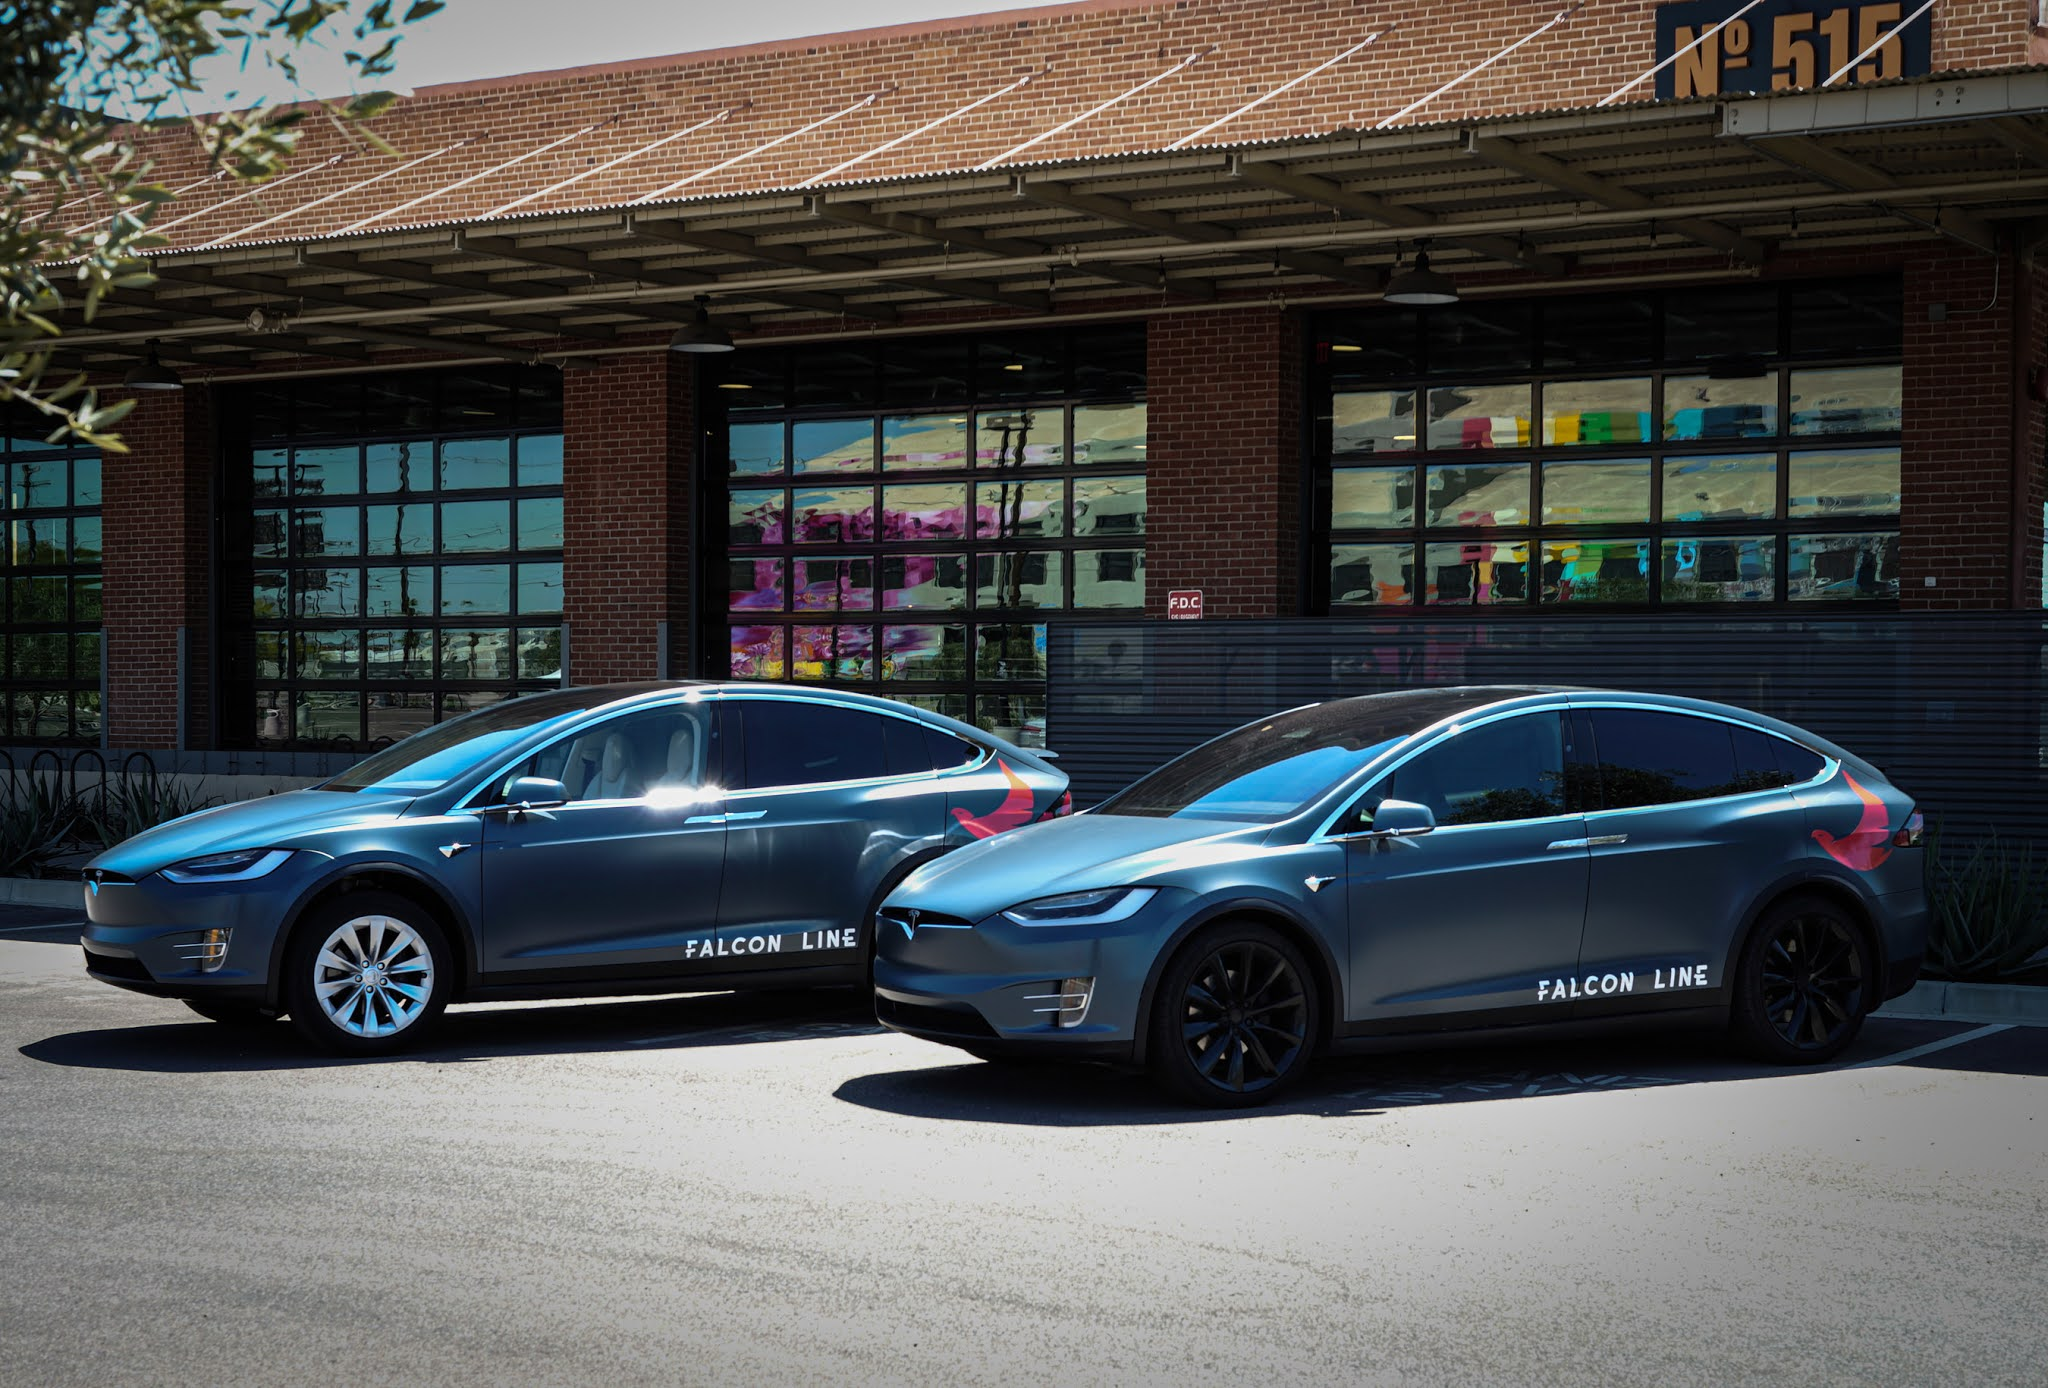 Tesla Car Share Program Expands Services to Flagstaff/Phoenix for Personal, Business Travel